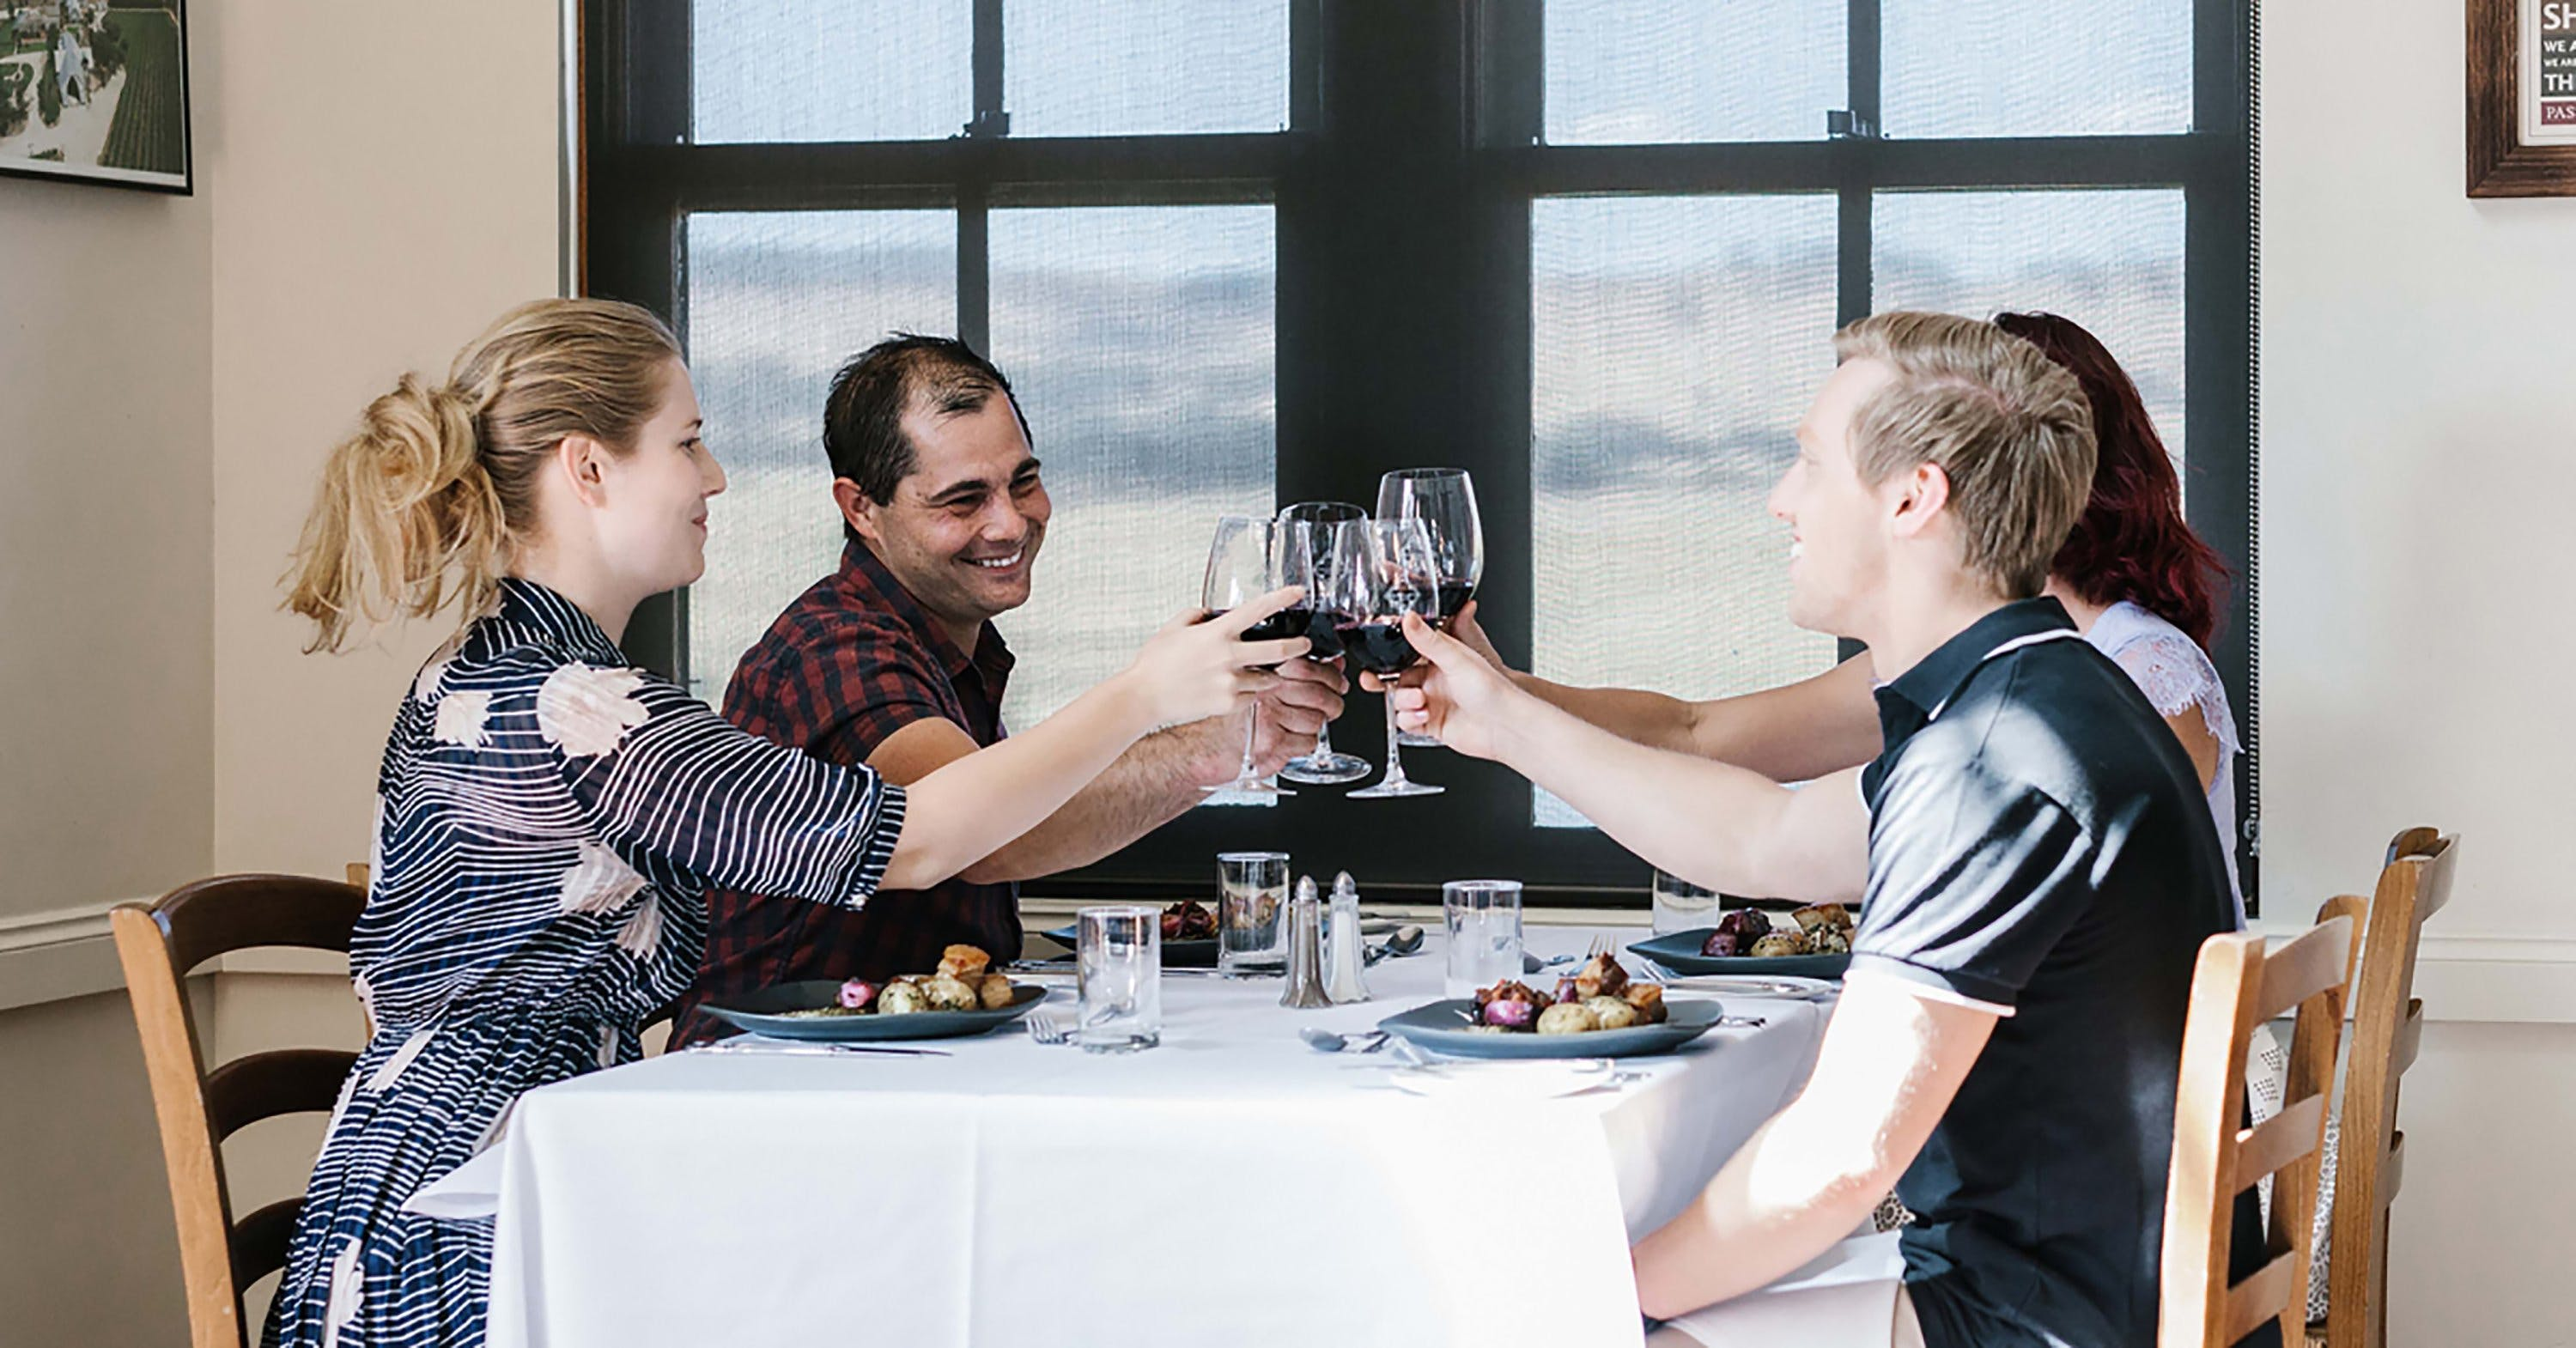 Locals Night at Cleveland Winery - VIC Tourism